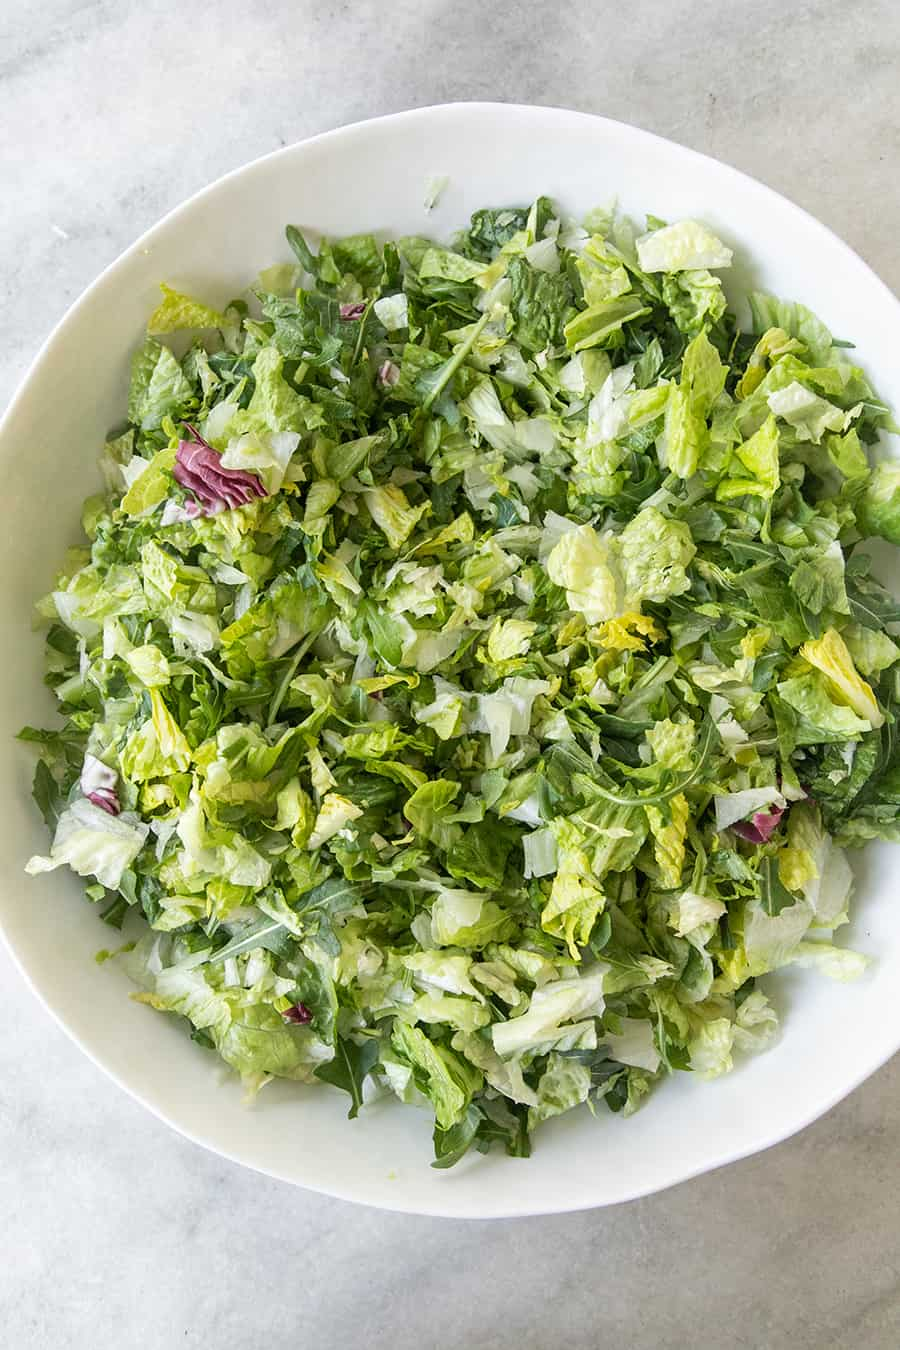 Lettuce in a white bowl